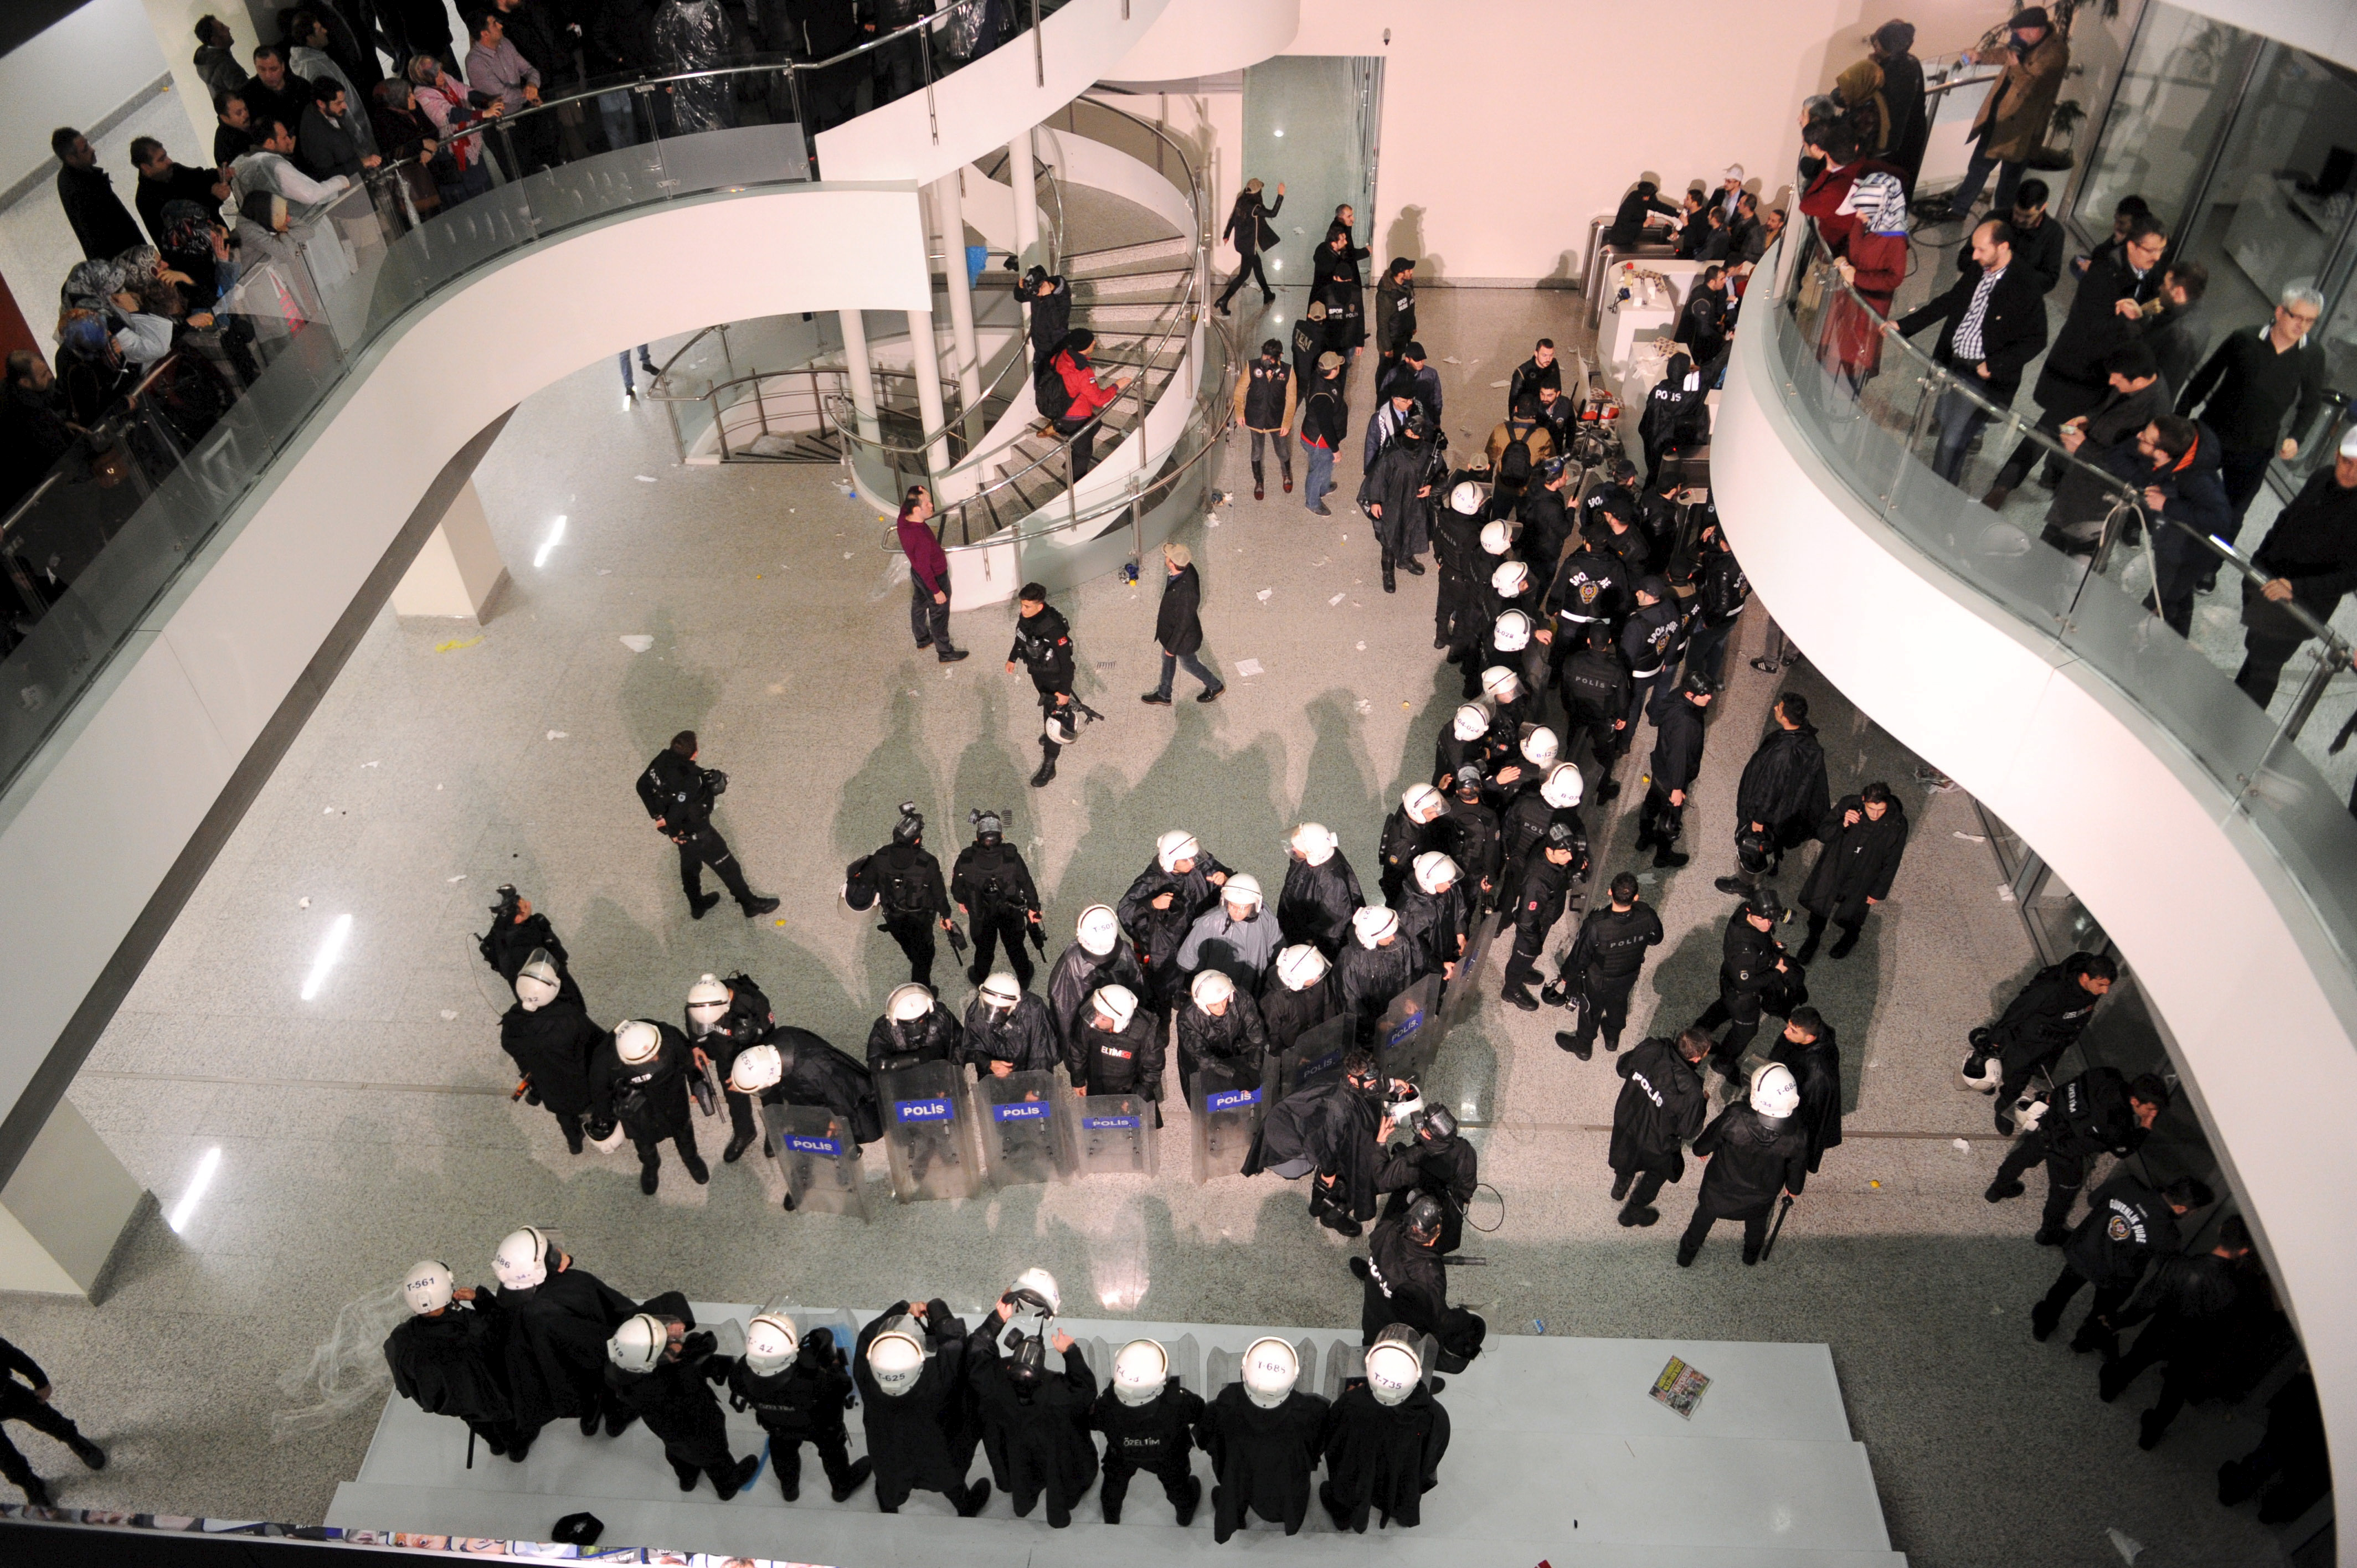 Riot police stand at the headquarters of Zaman newspaper in Istanbul, Turkey, late March 4, 2016